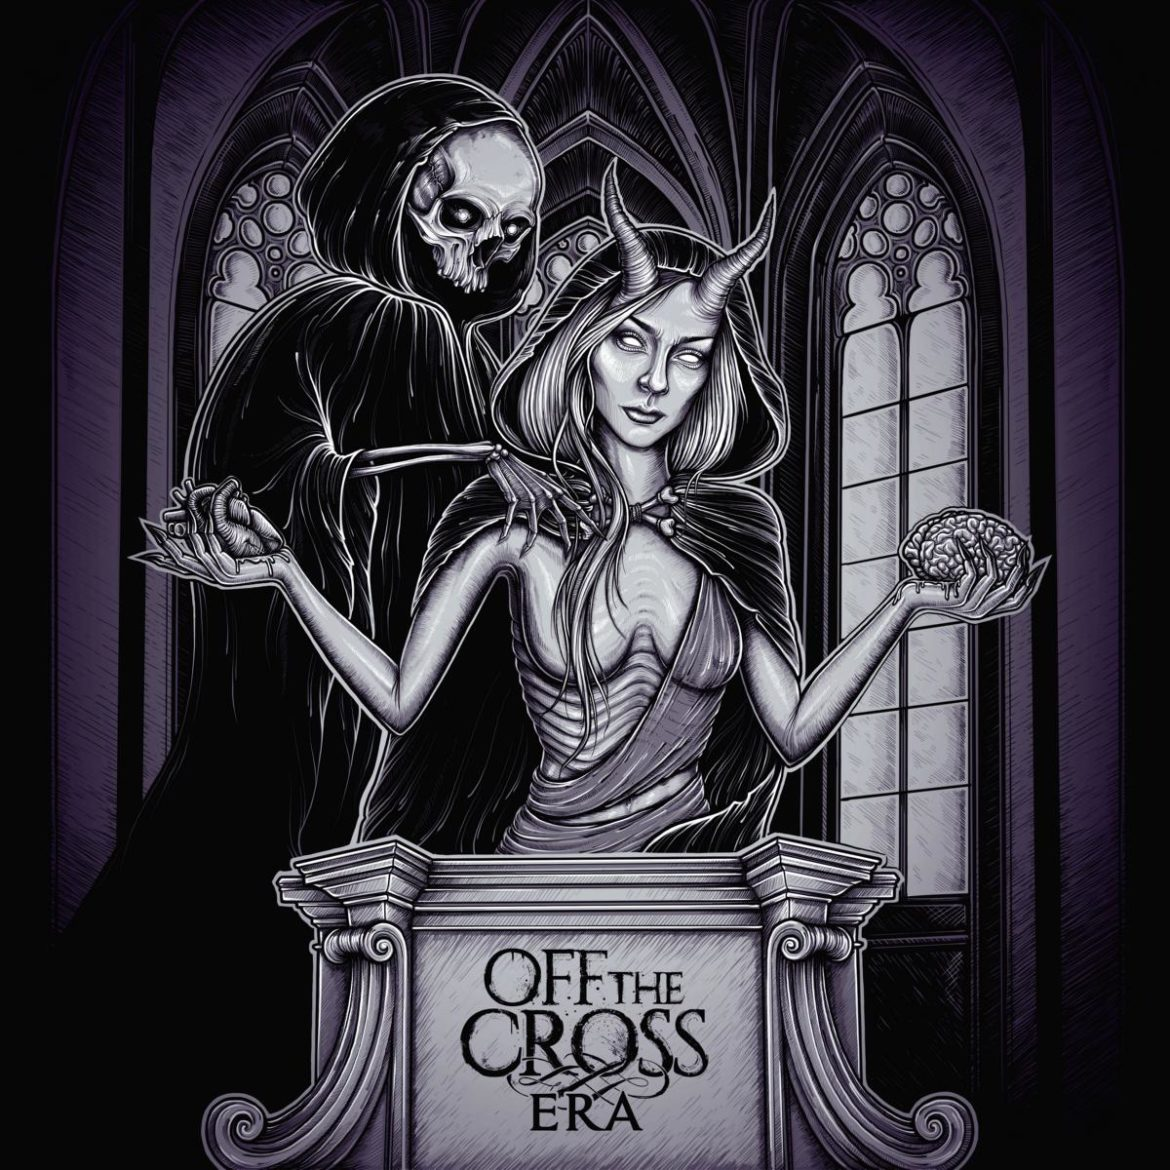 off the cross era album cover